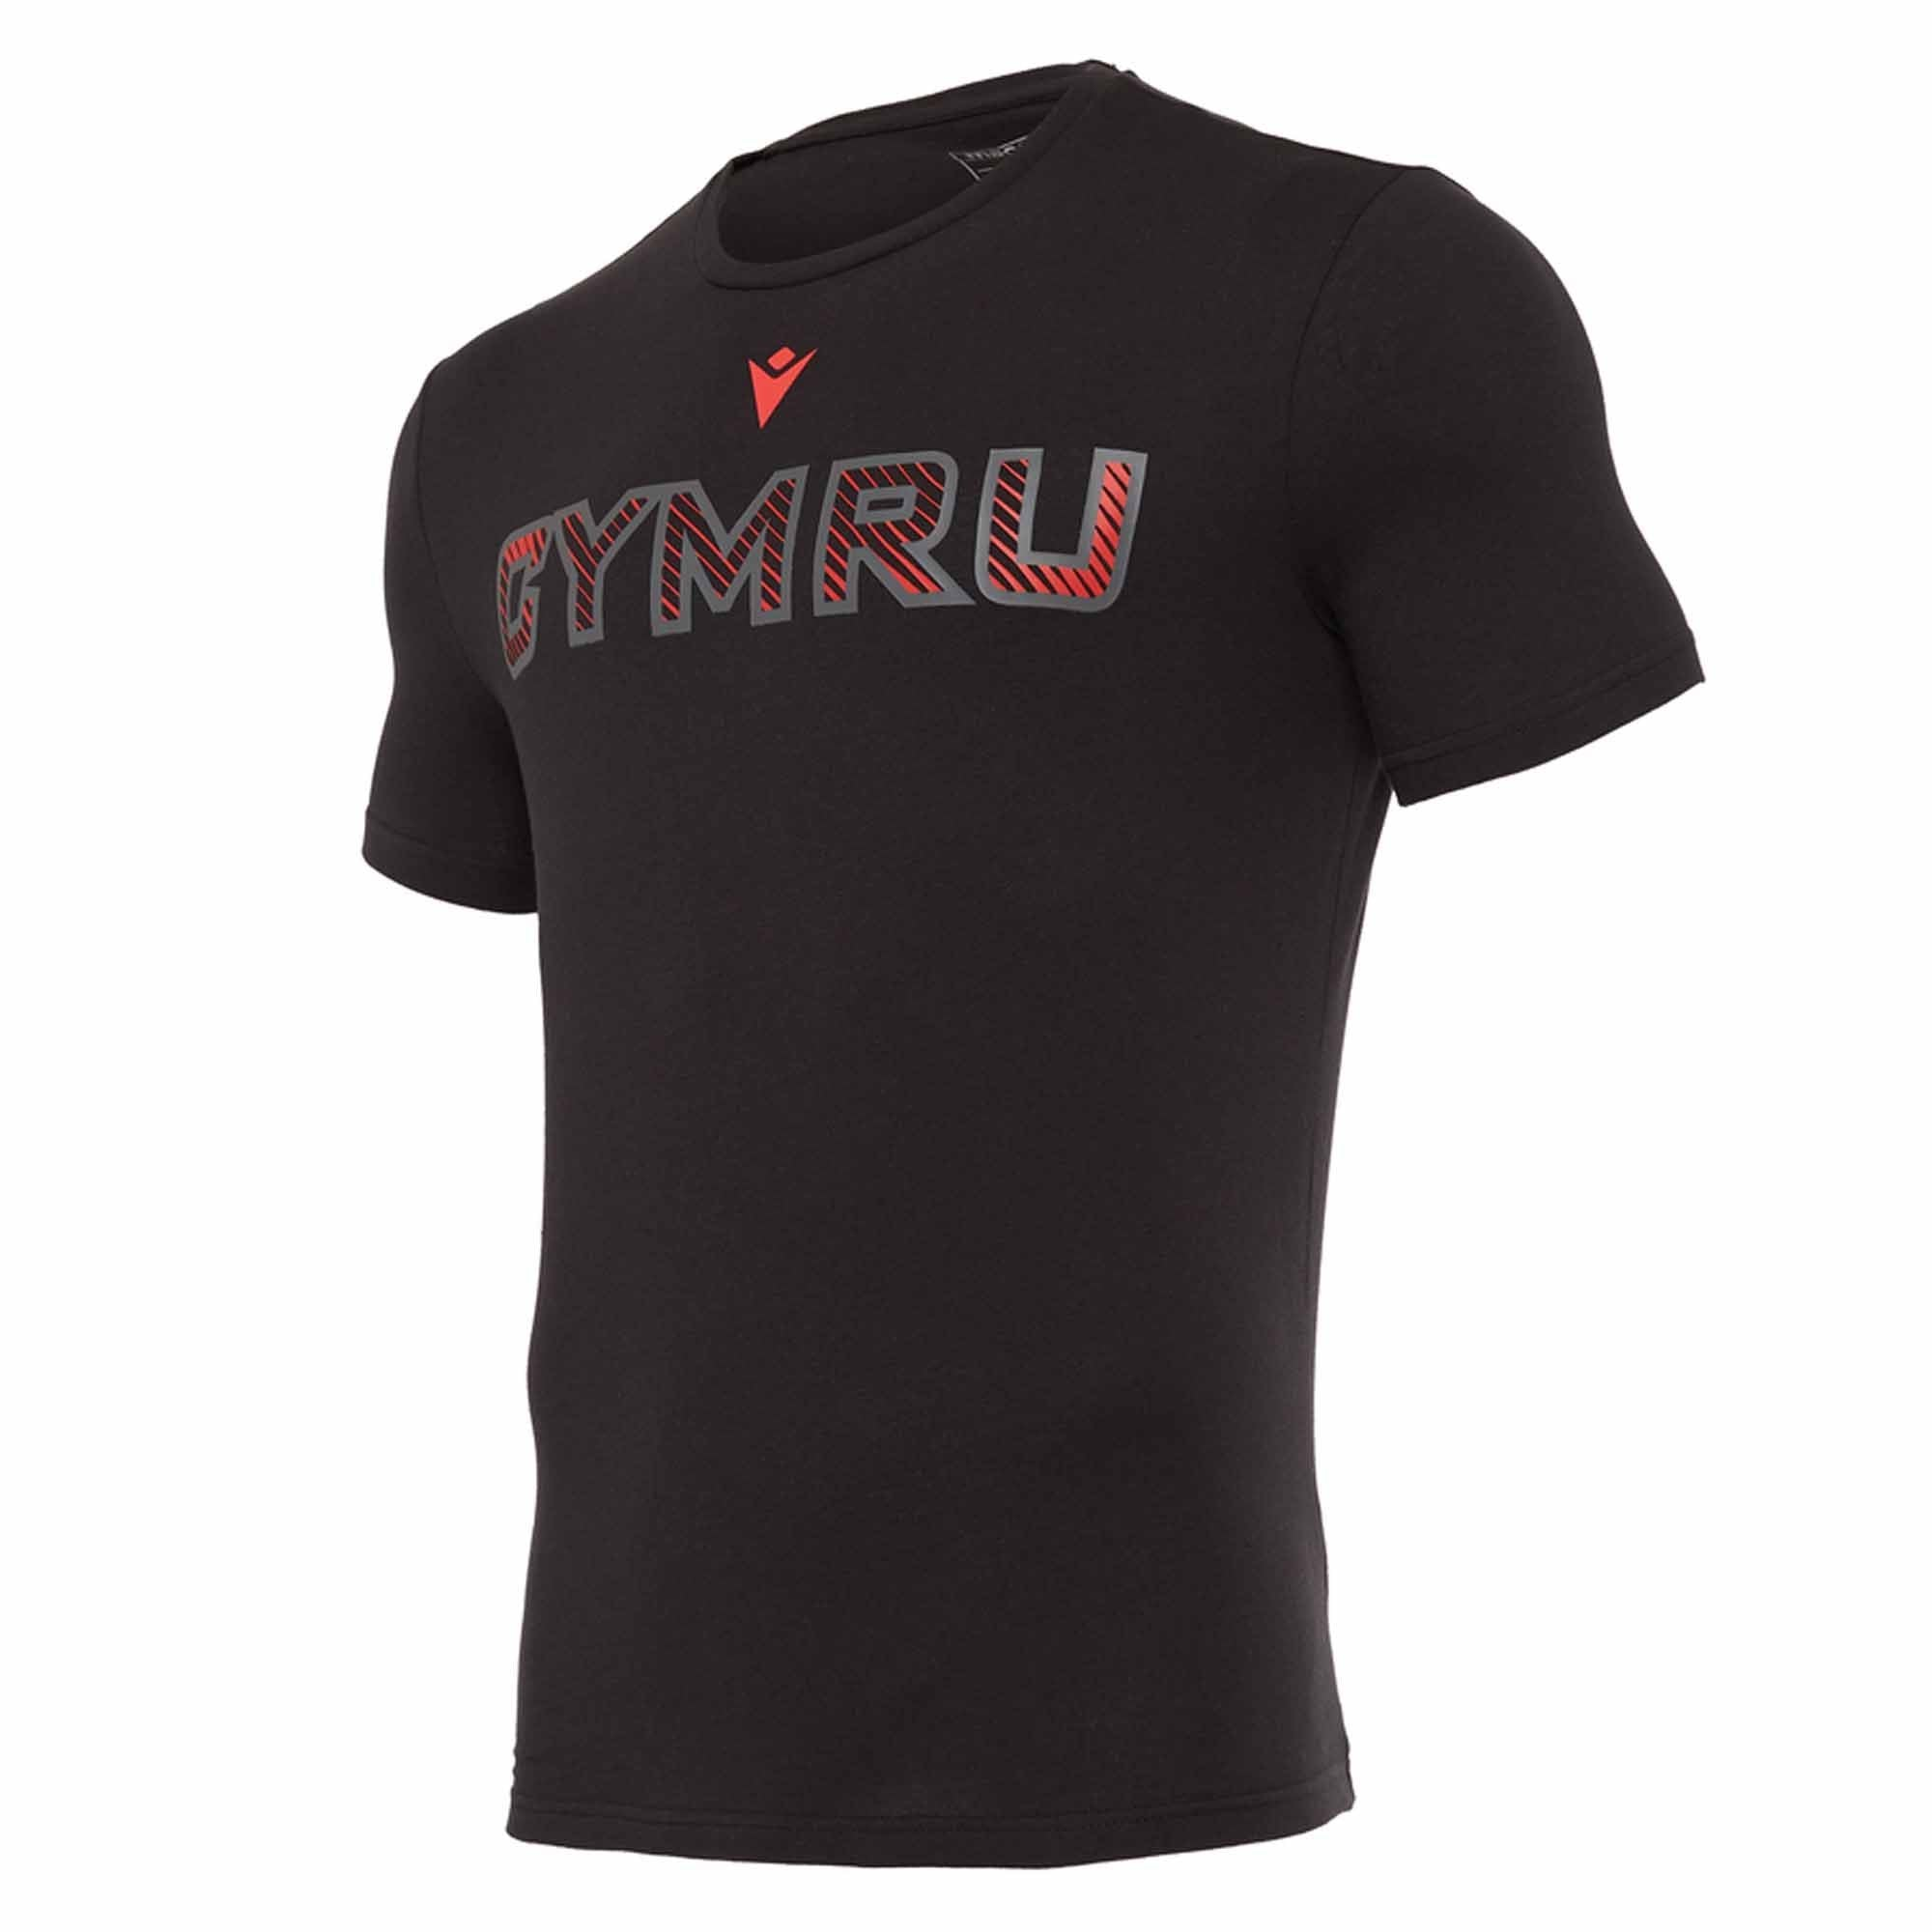 Wales Rugby Leisure T-Shirt - 20/21 - Absolute Rugby